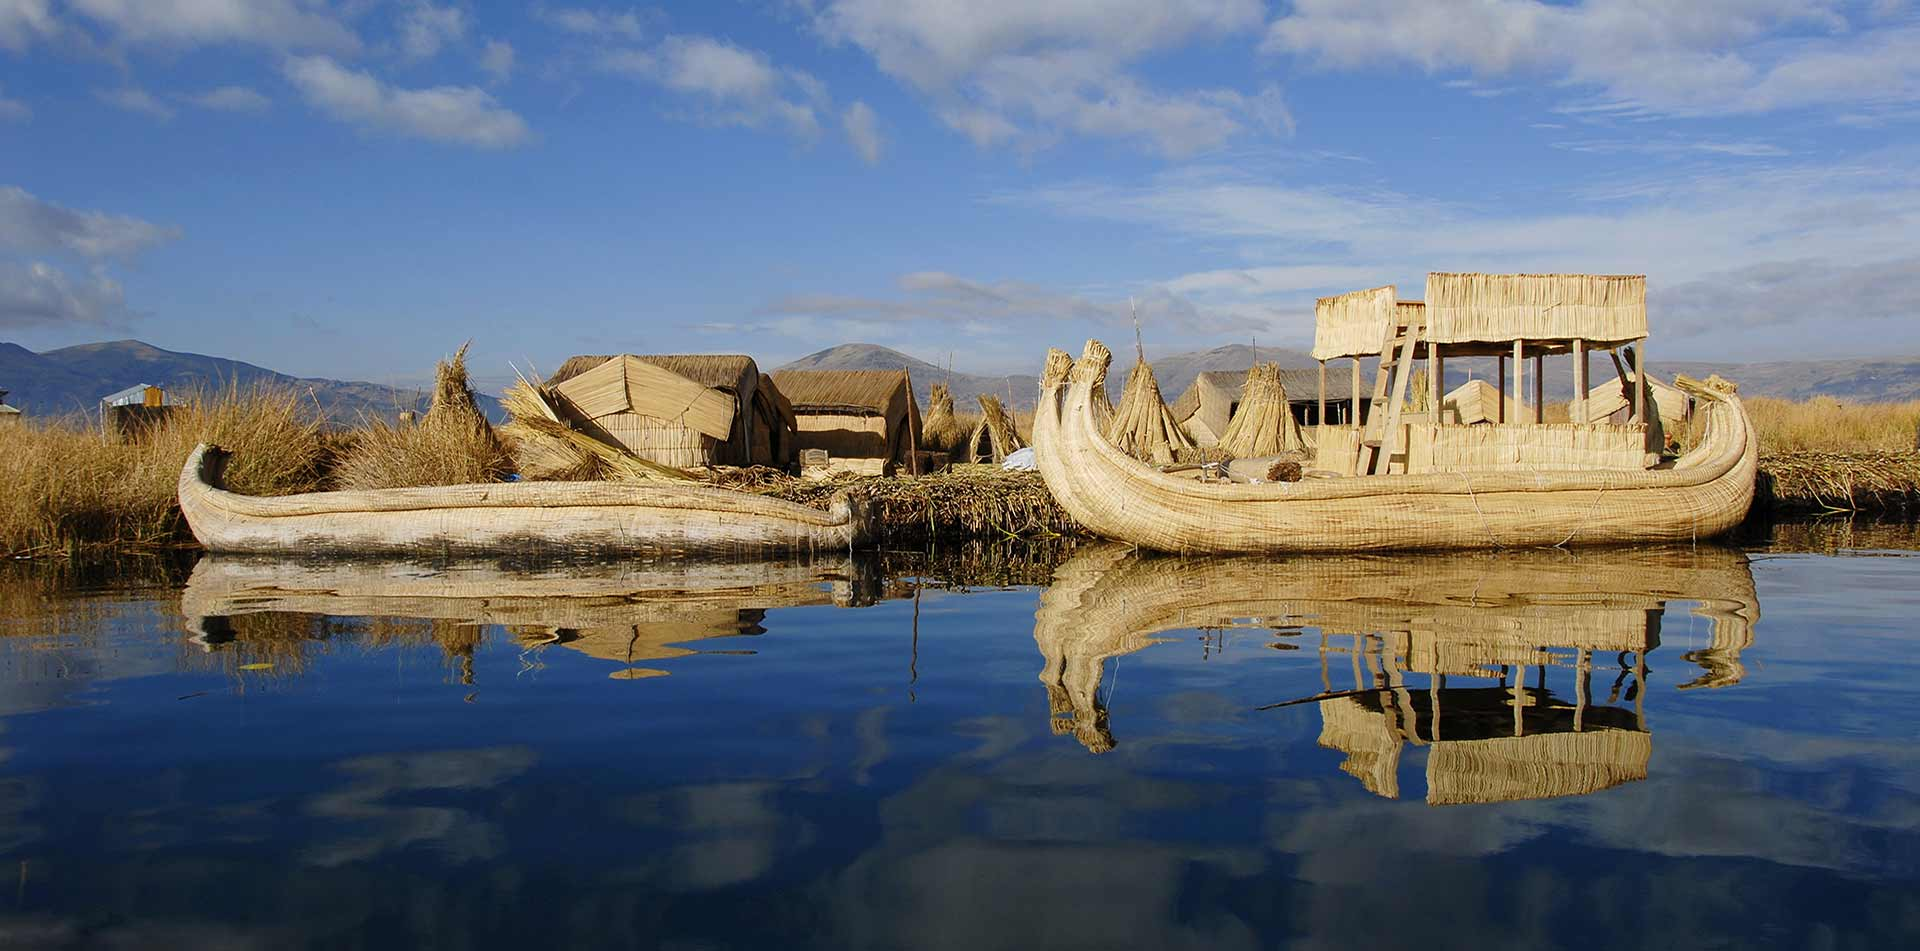 South America Peru Lake Titicaca floating island handmade totora reeds boat local Uros village - luxury vacation destinations